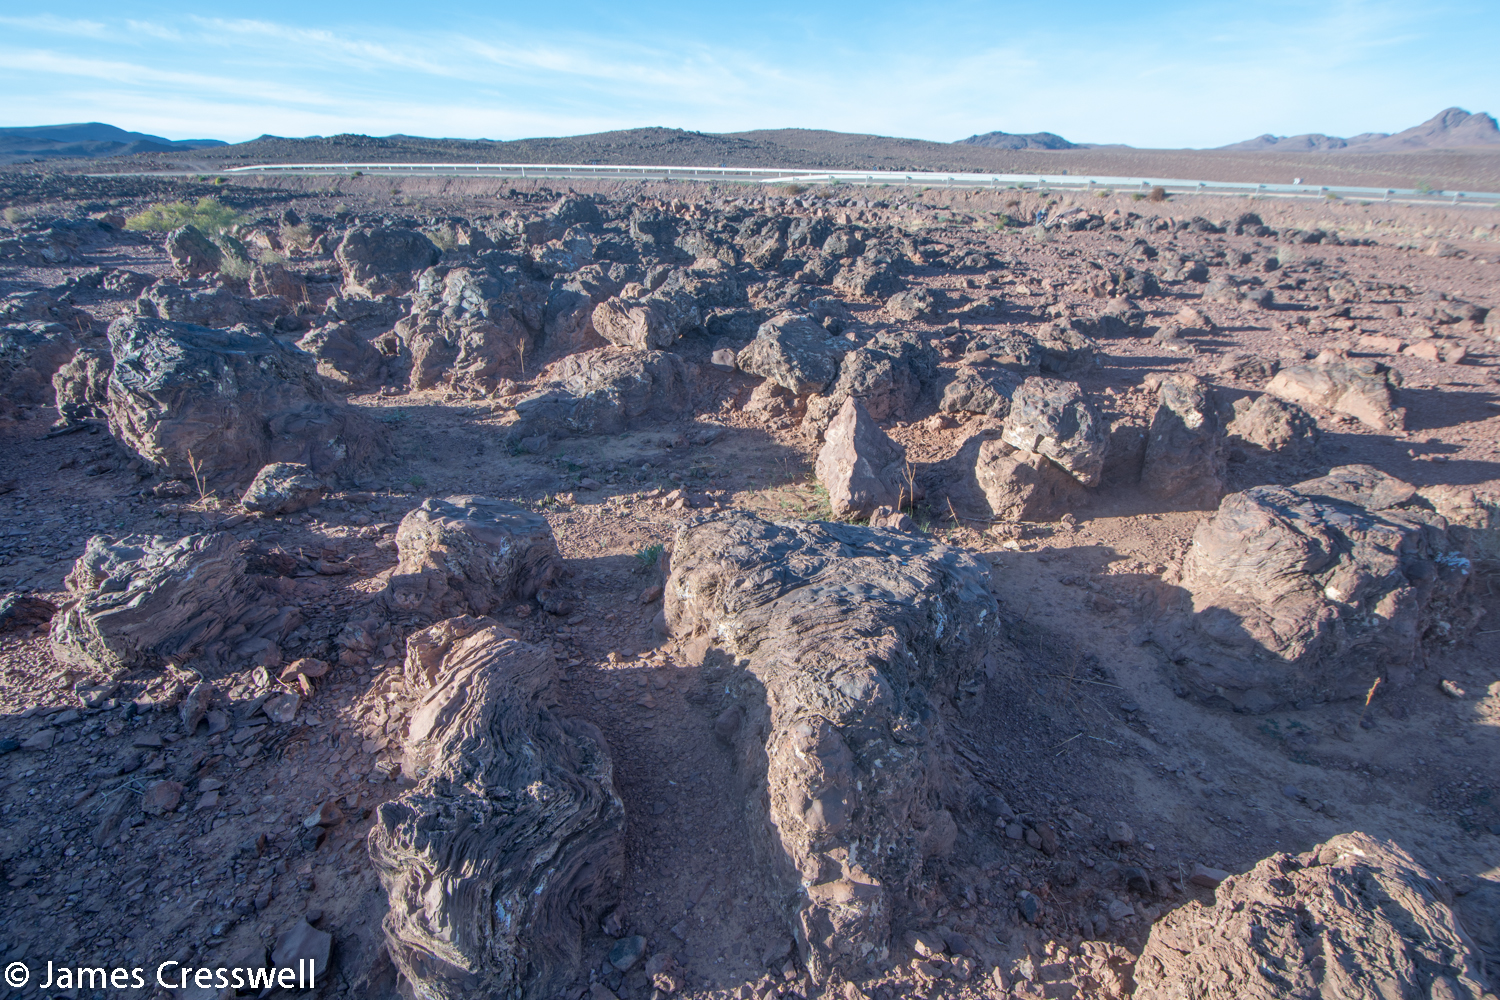 Uneven land surface with stromatolites standing proud